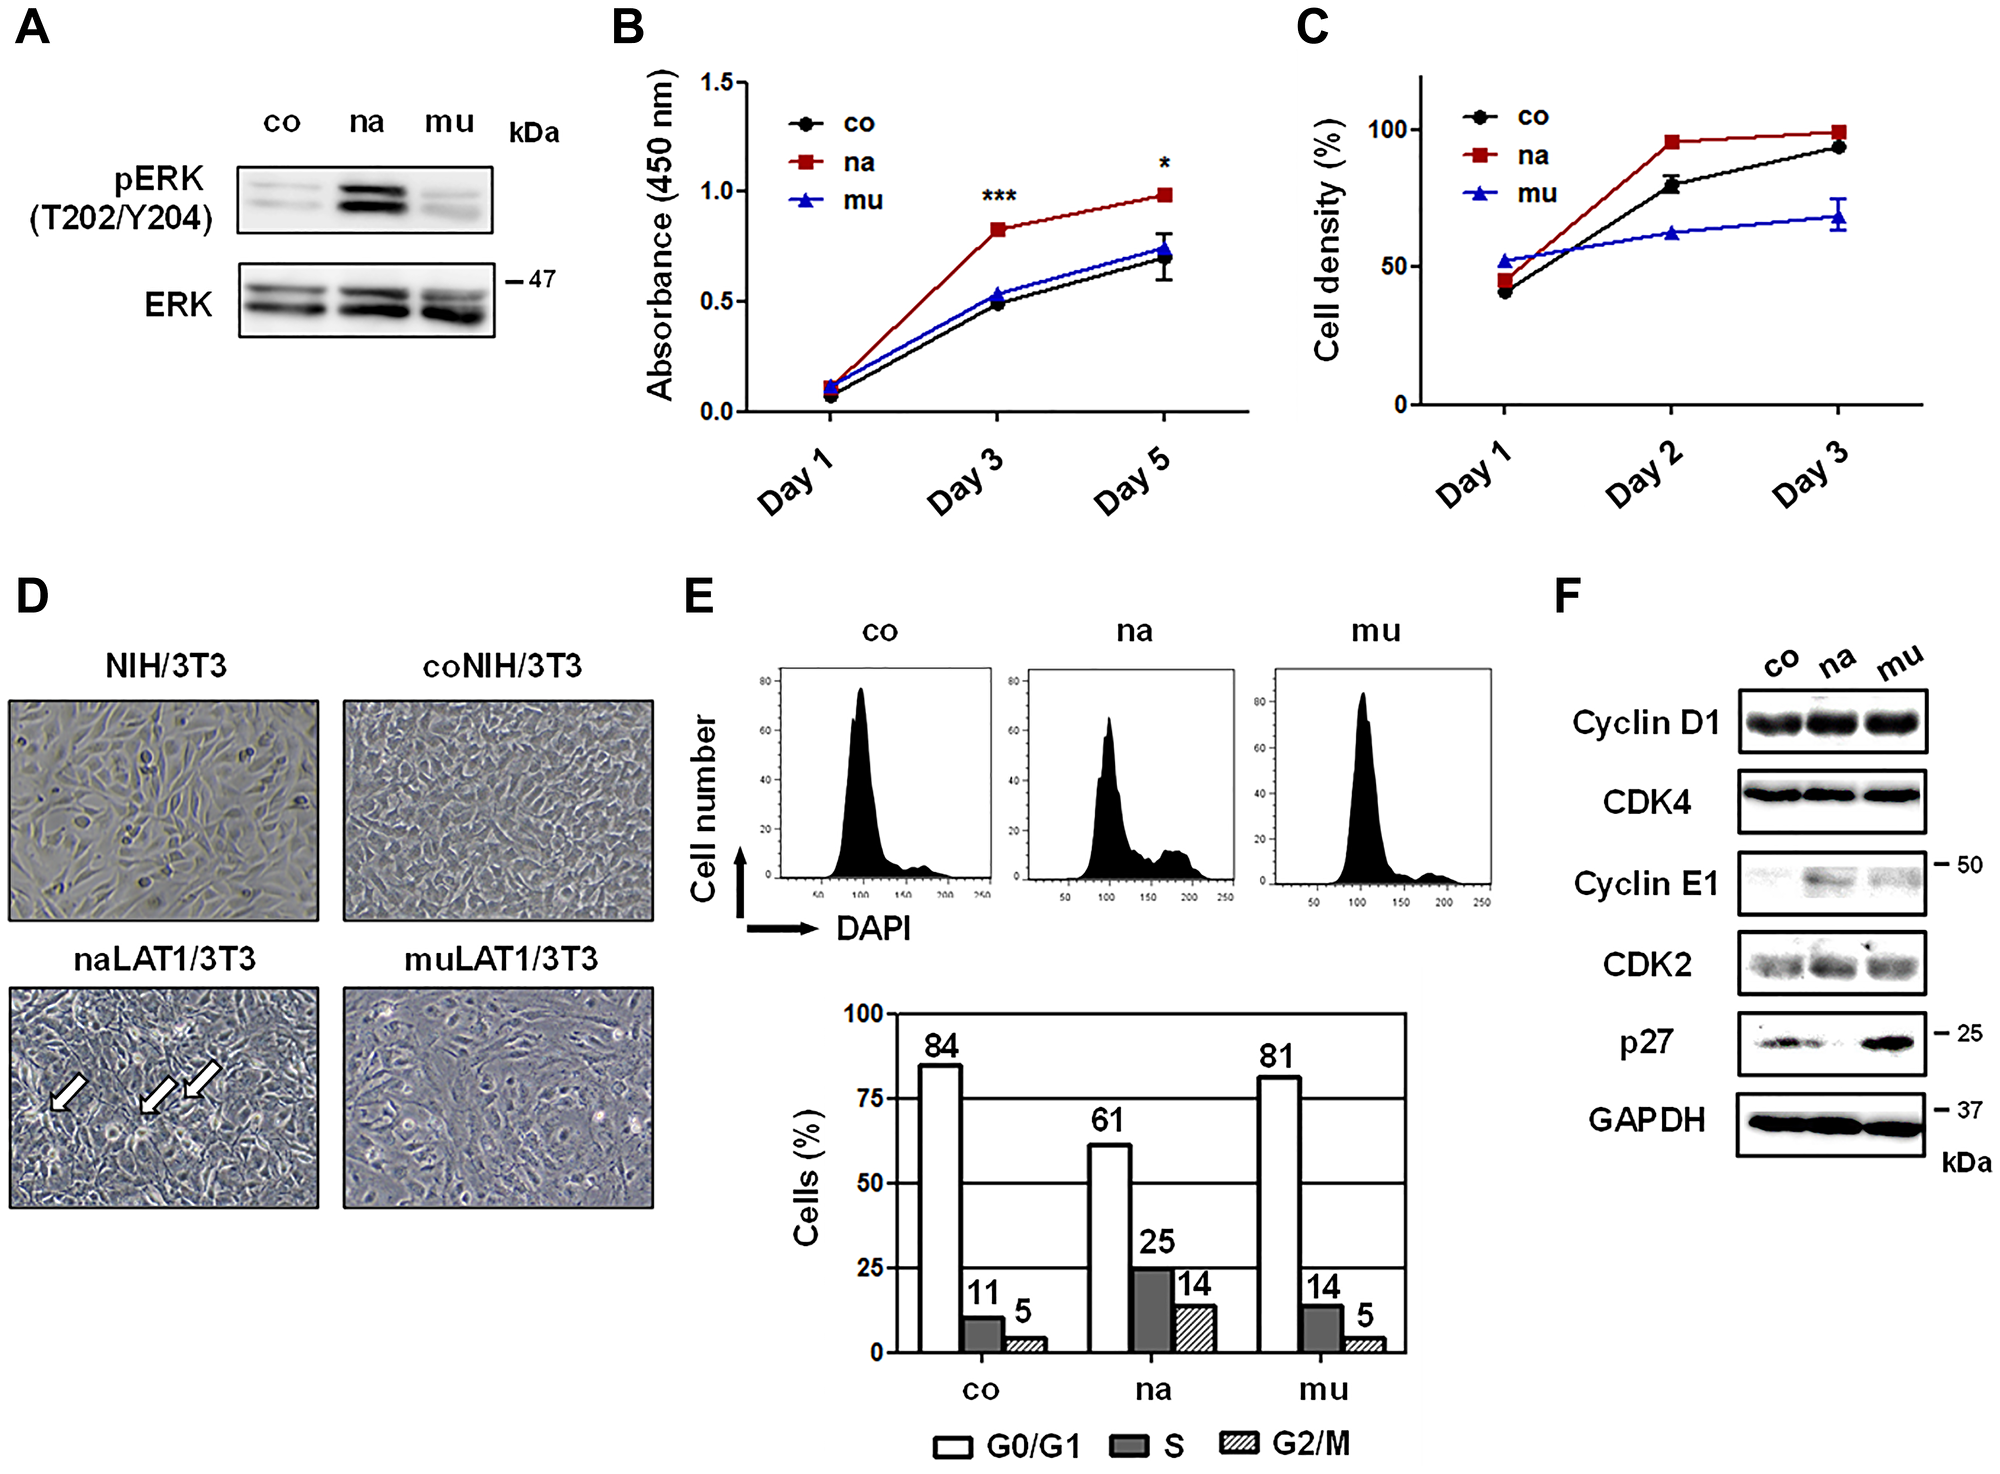 Cell growth-related phenotypes of NIH/3T3 cell lines overexpressing human LAT1 proteins.